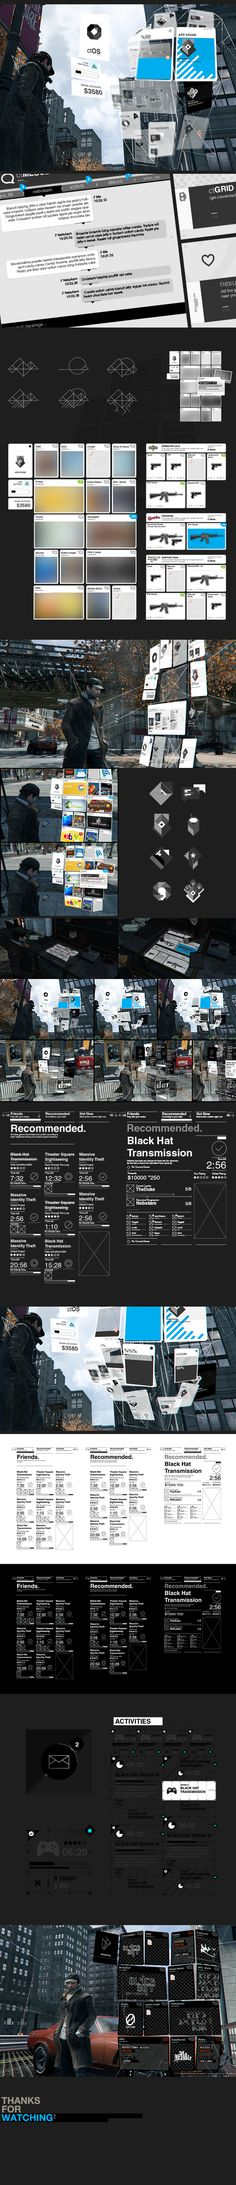 WATCH_DOGS : Late PDA R&D by Timothe Lapetite, via Behance